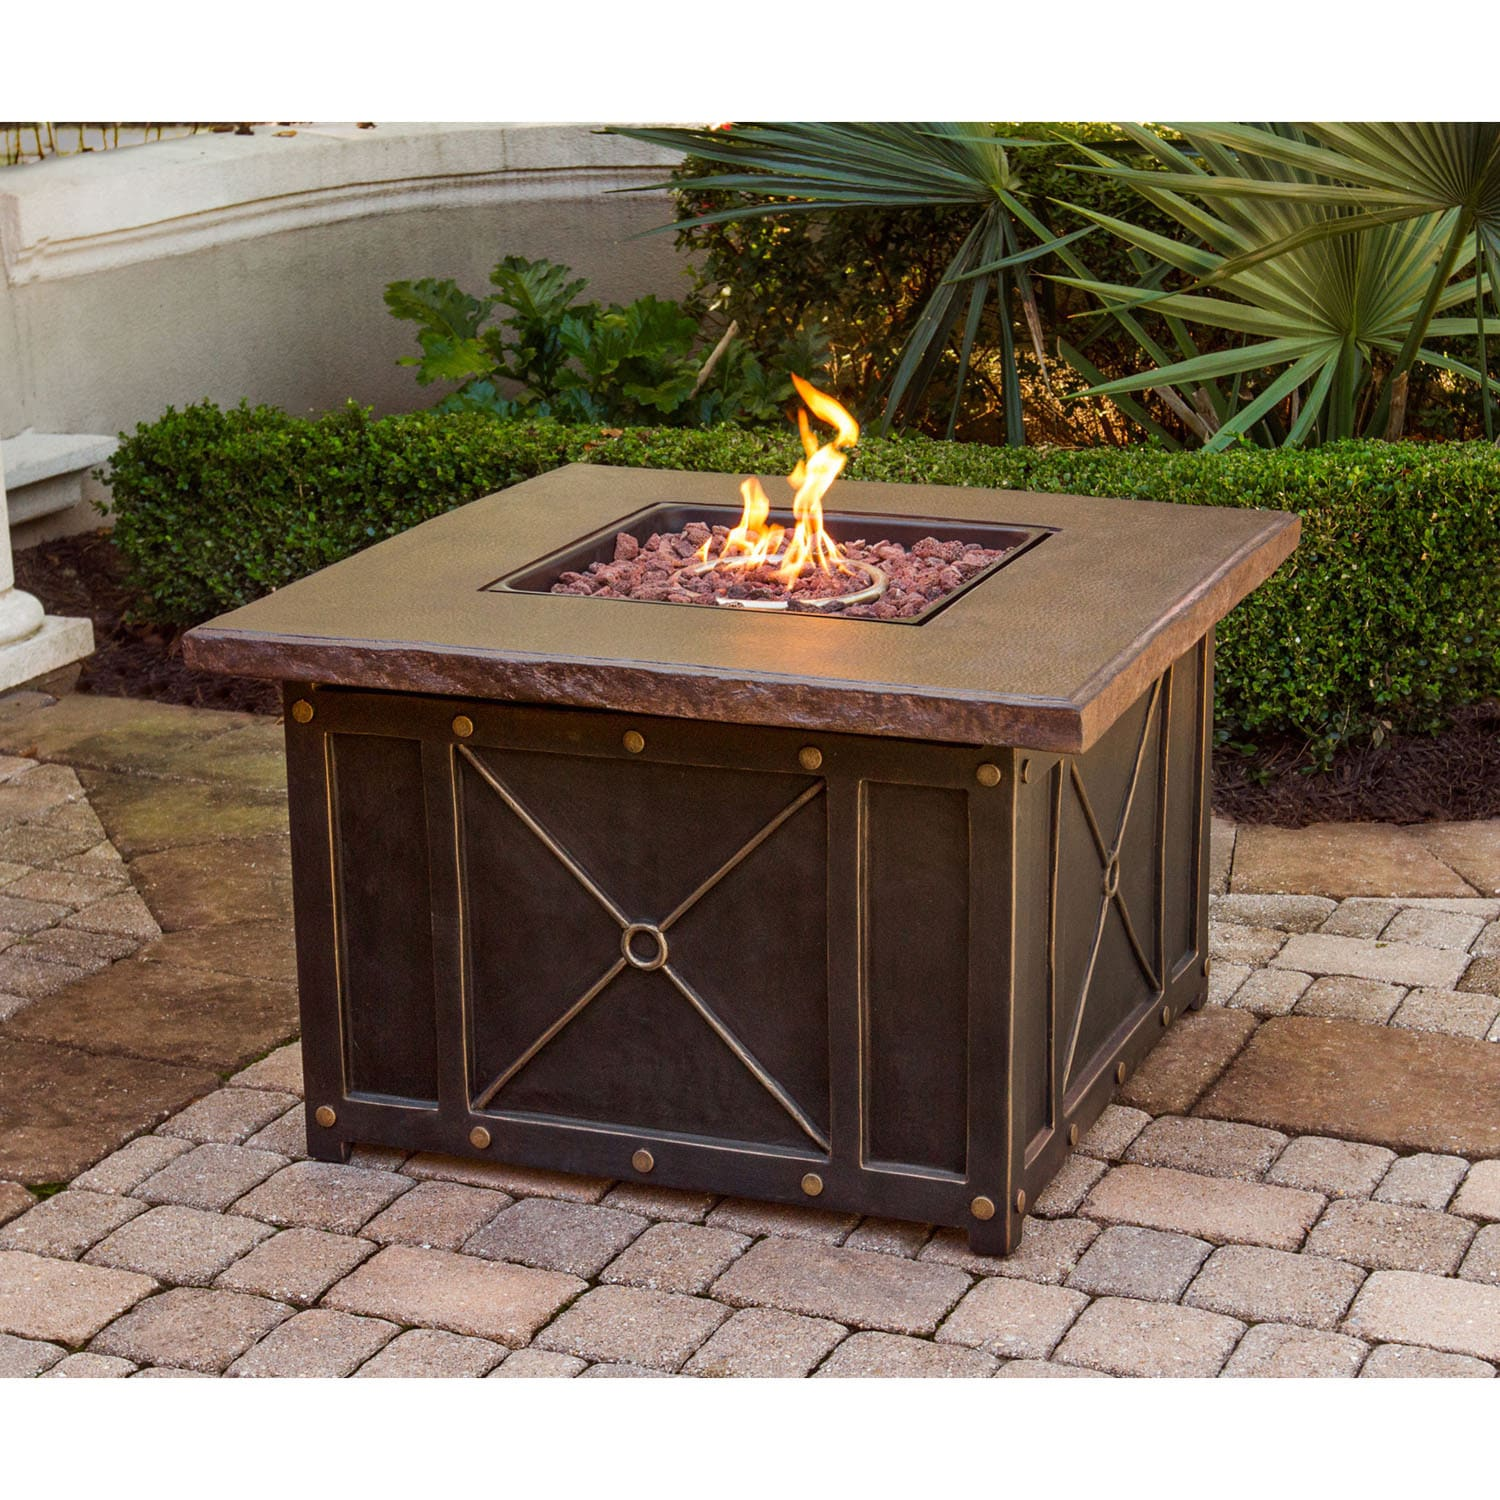 Hanover Durastone Top 40-inch Square Gas Fire Pit (Brown)...